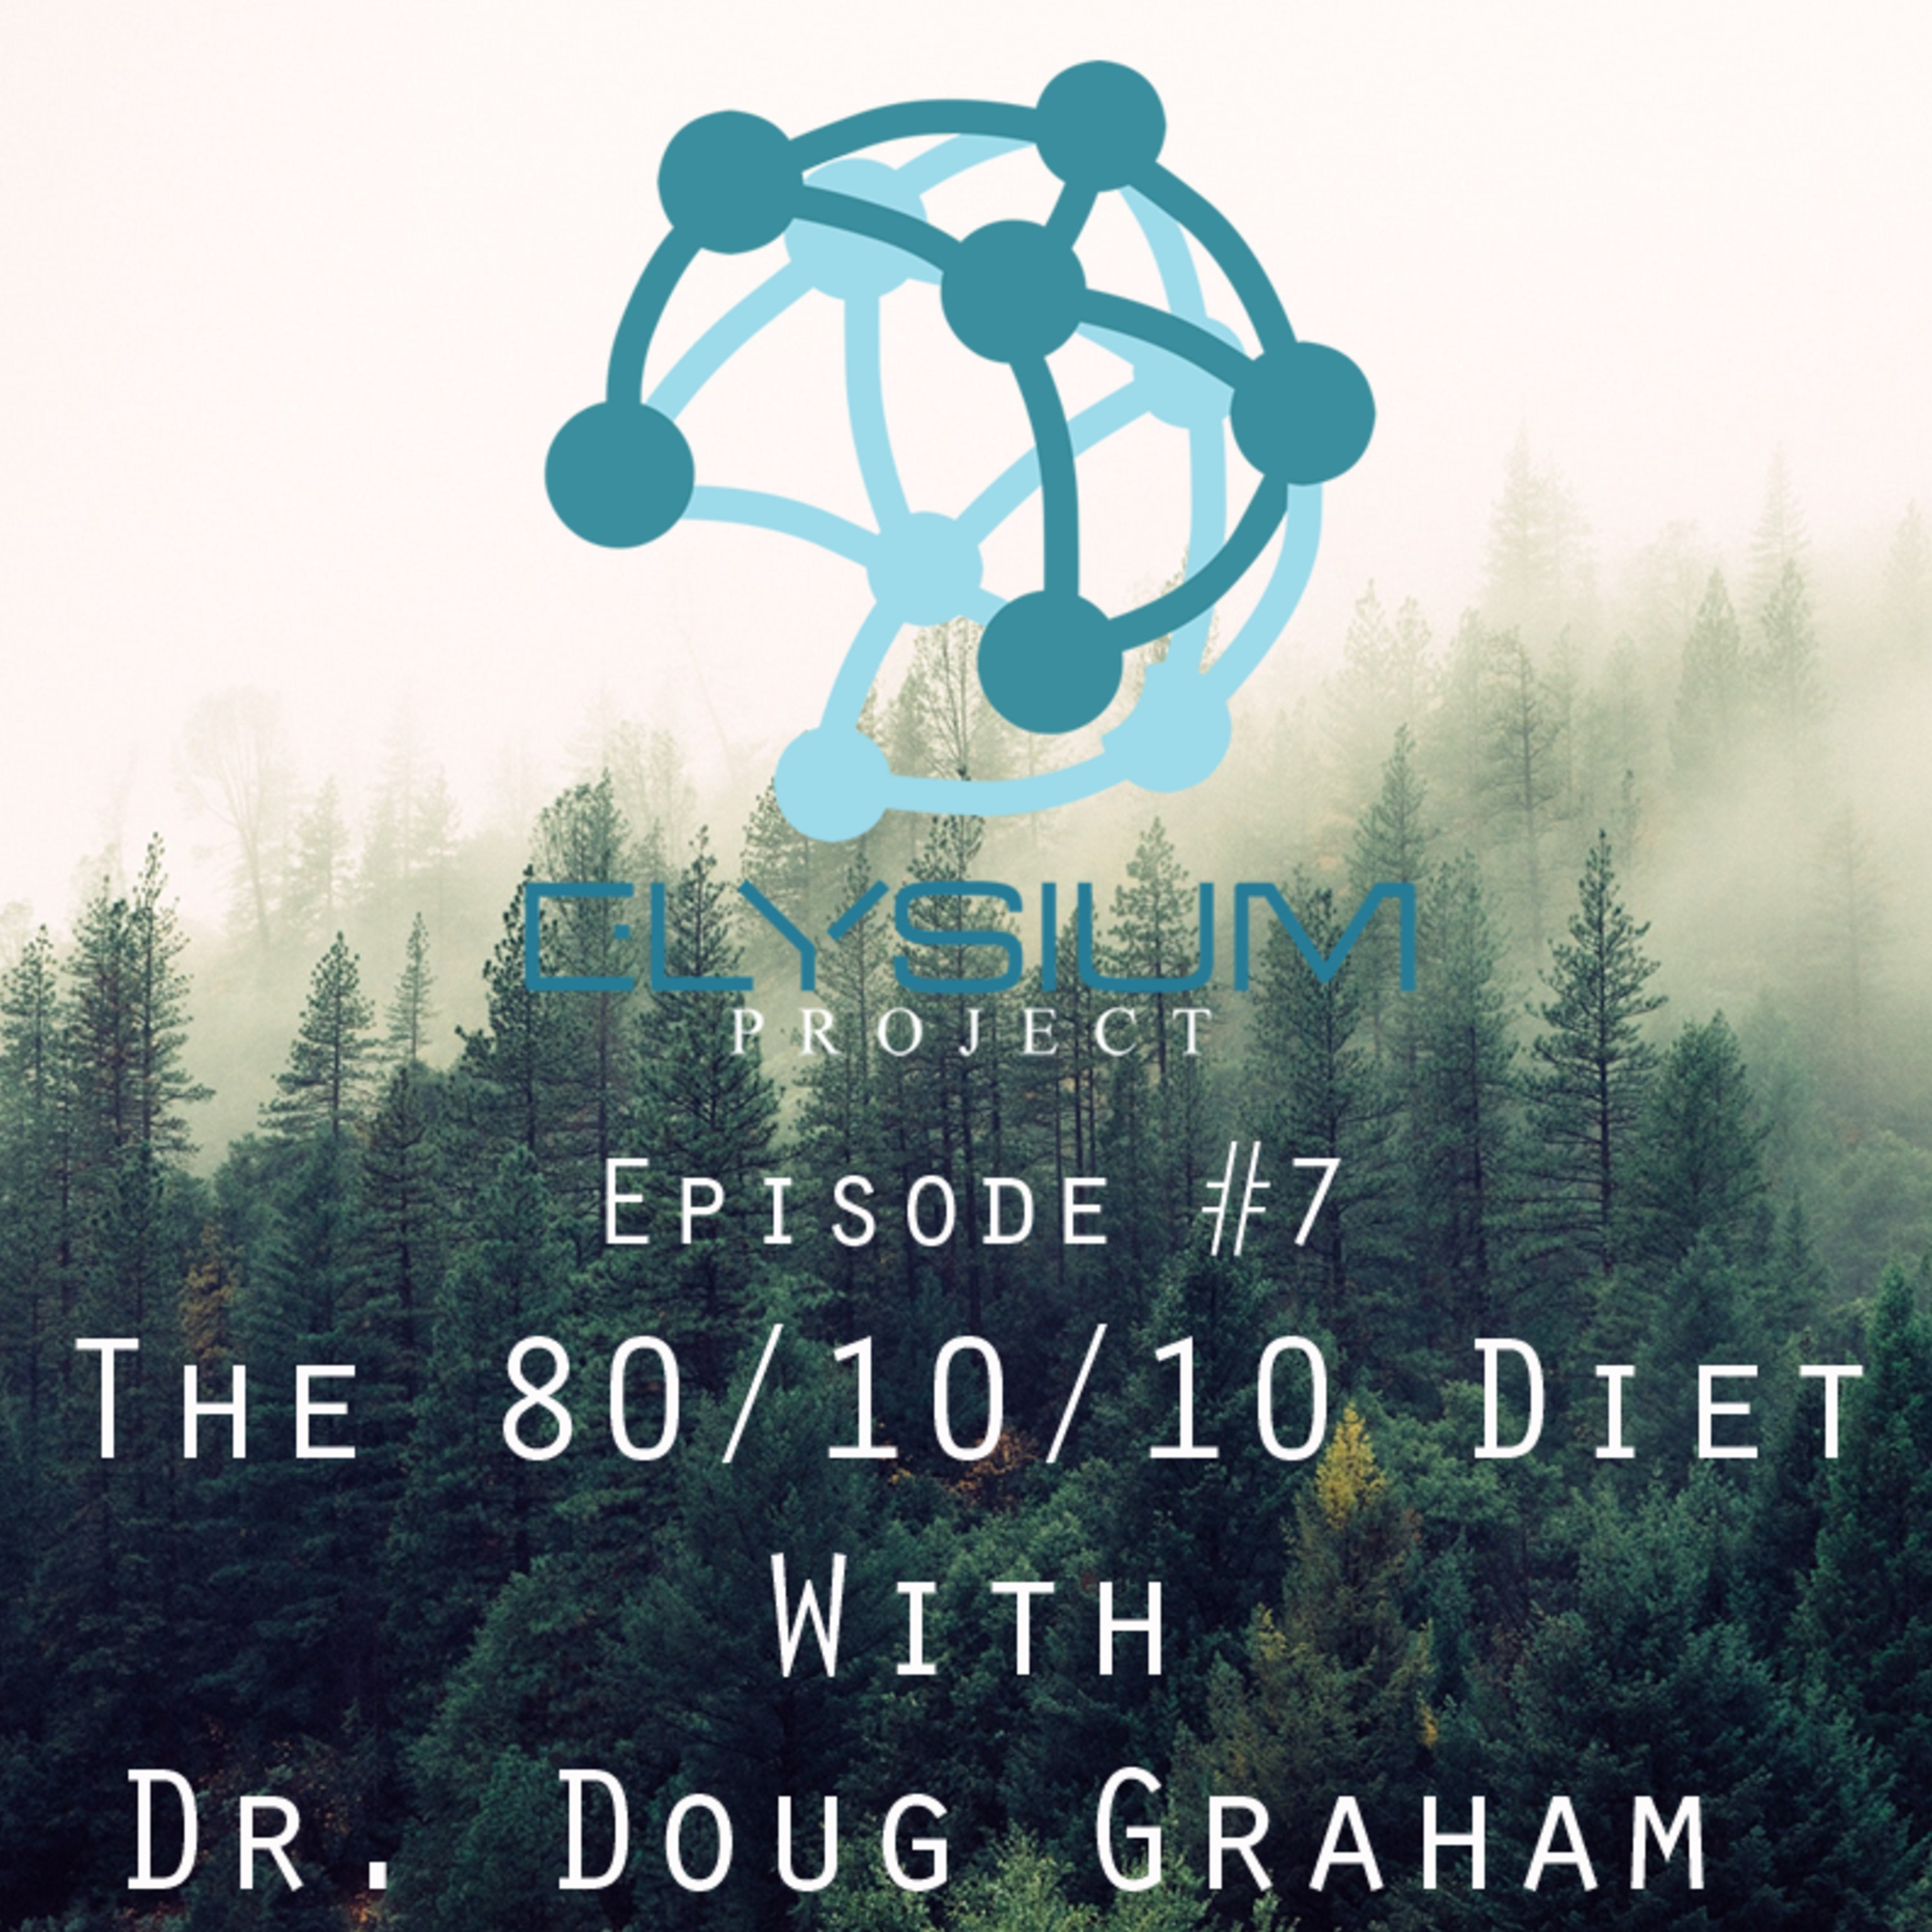 Episode 7: The 80/10/10 Diet with Dr. Doug Graham